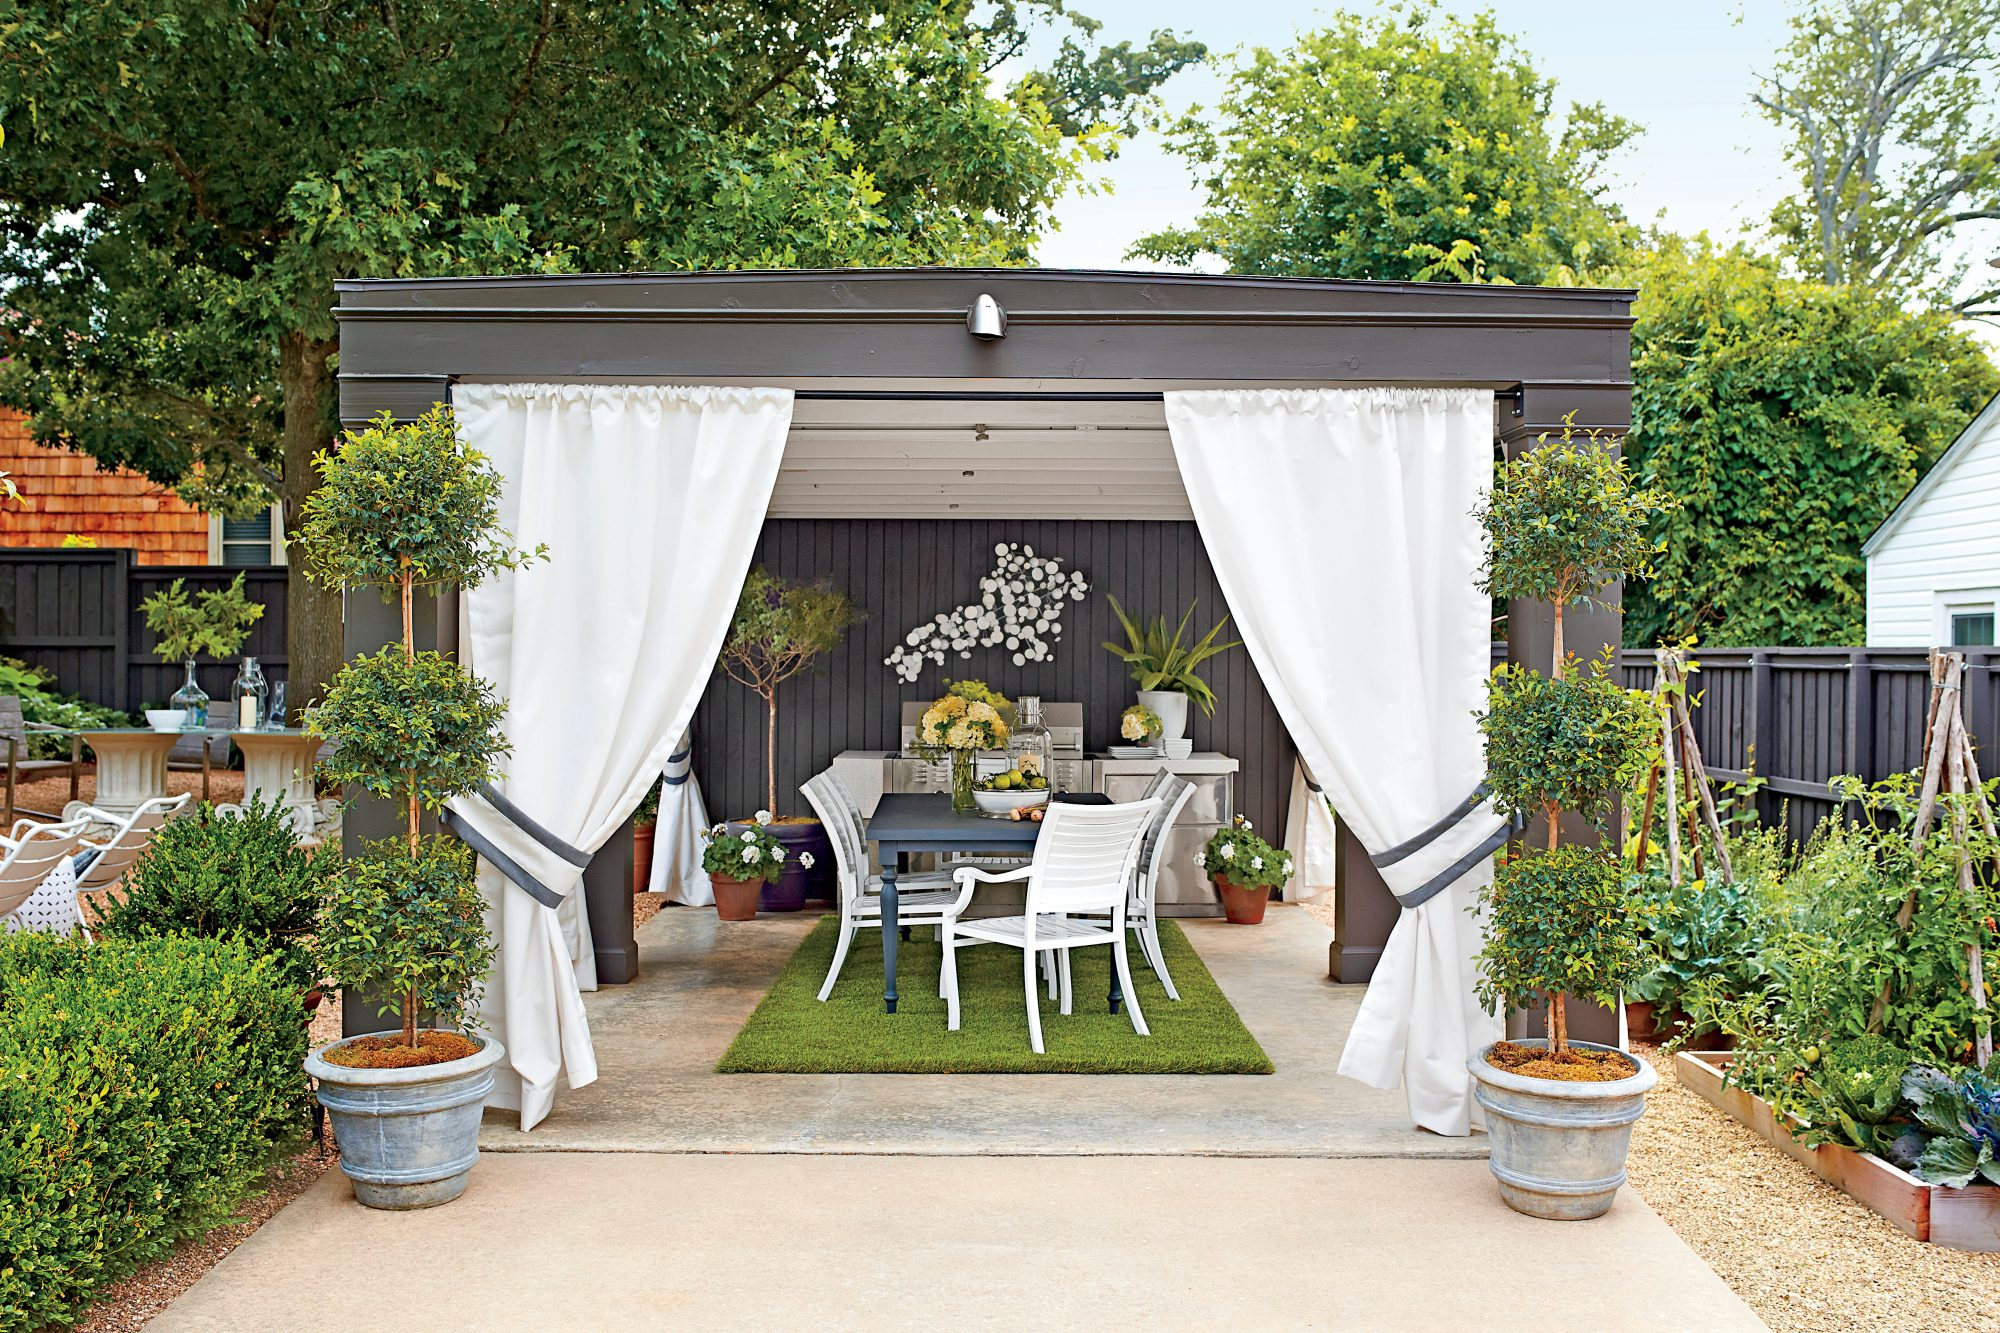 The Cabana and Vegetable Garden